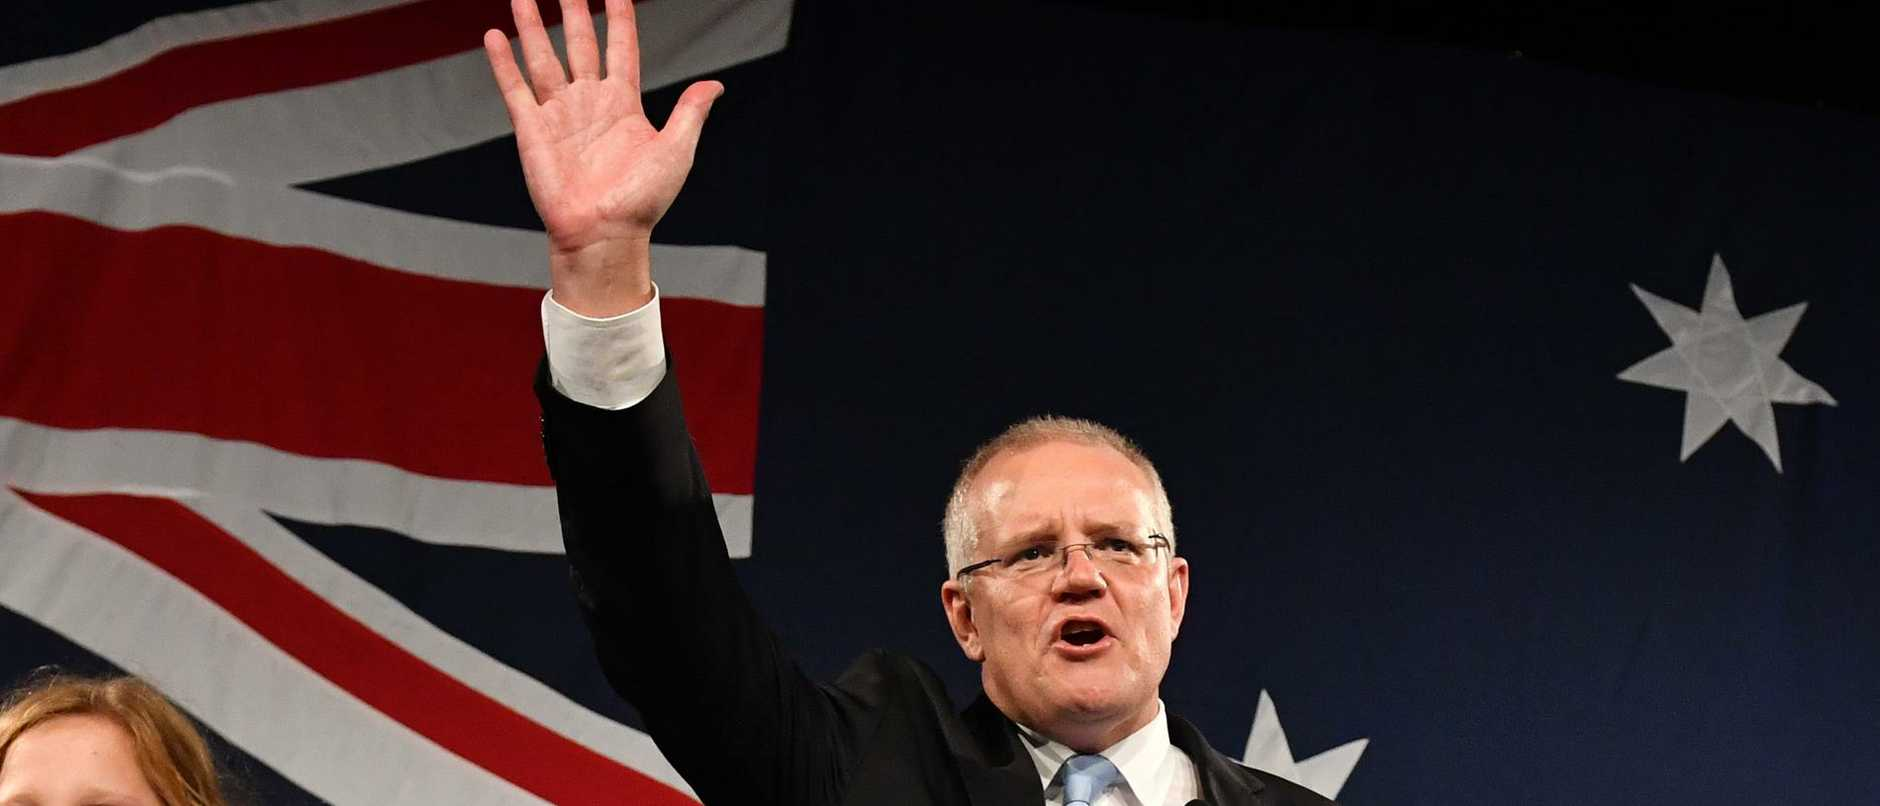 Opinion: How Scott Morrison can win over Qld again